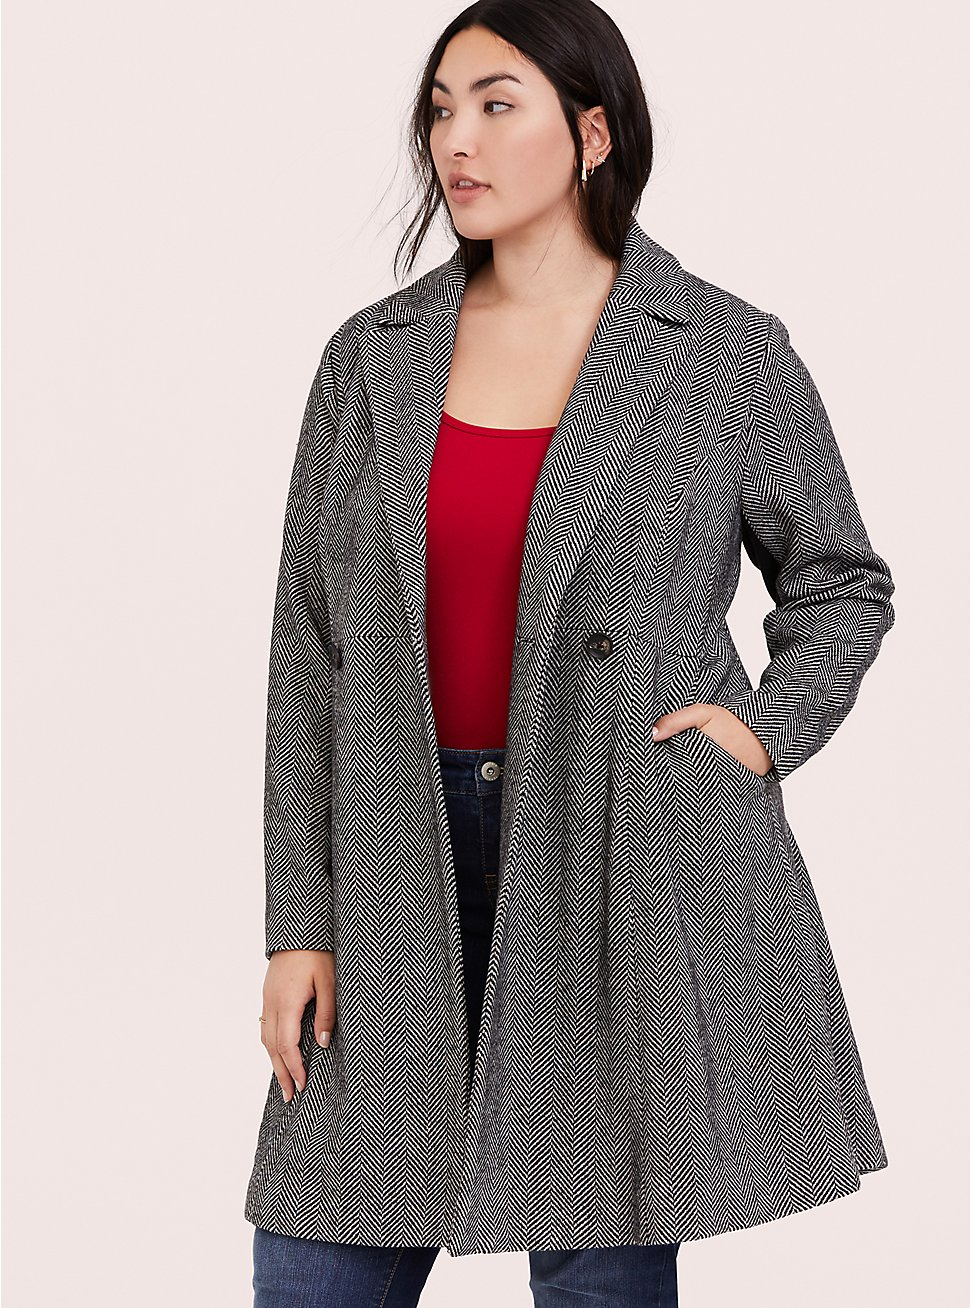 Herringbone Woolen Fit & Flare Coat 4